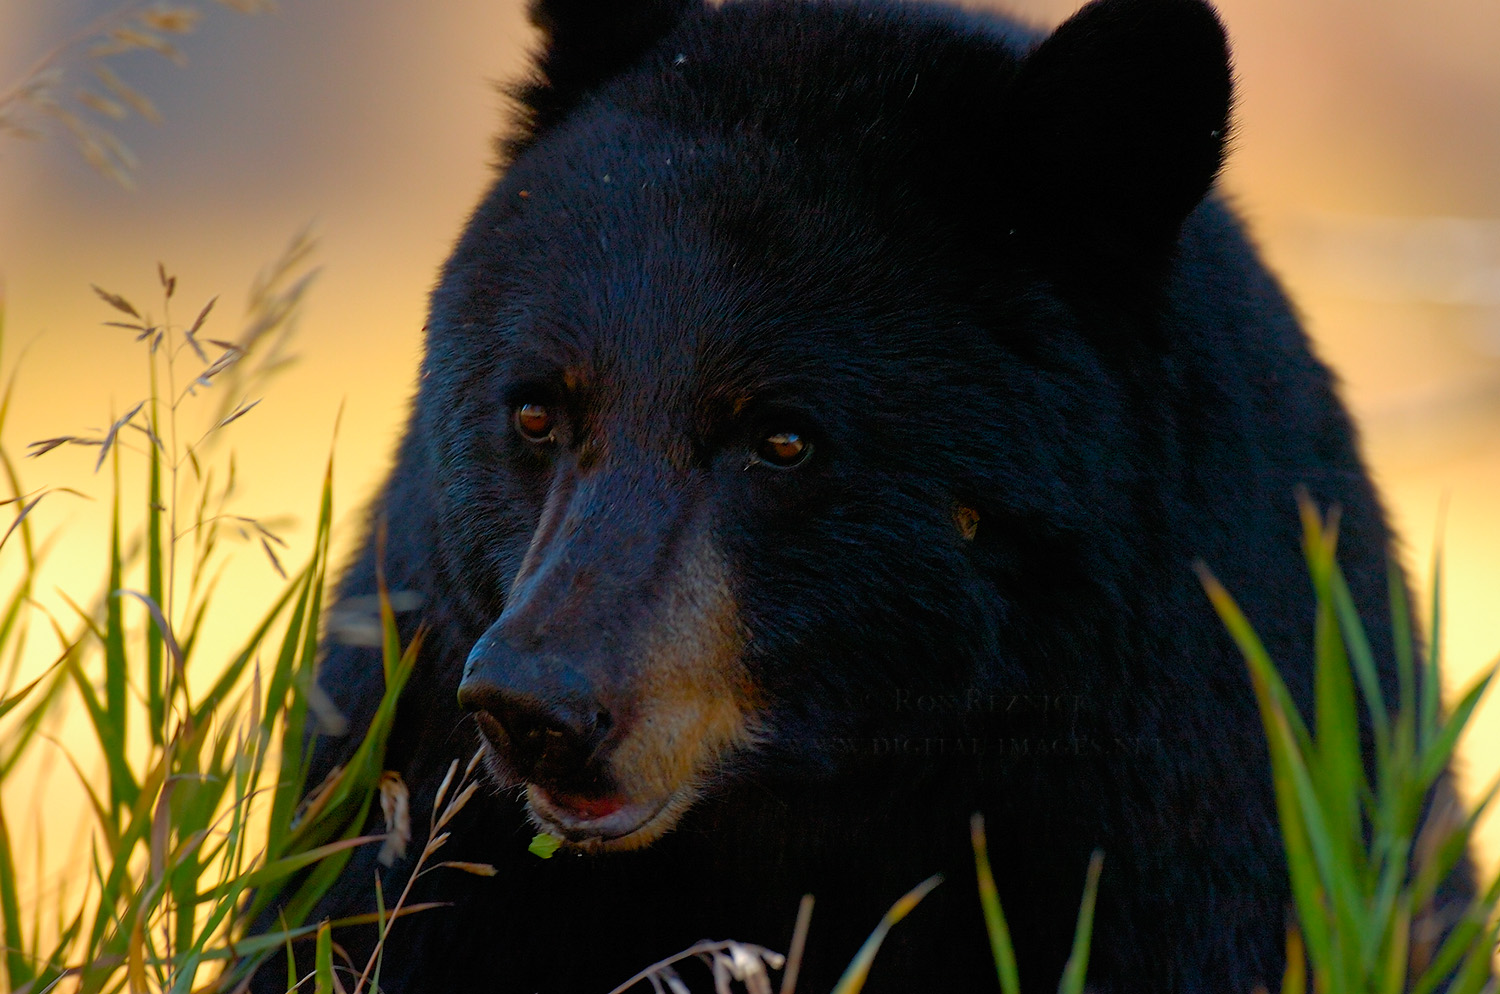 Black bear head profile - photo#23